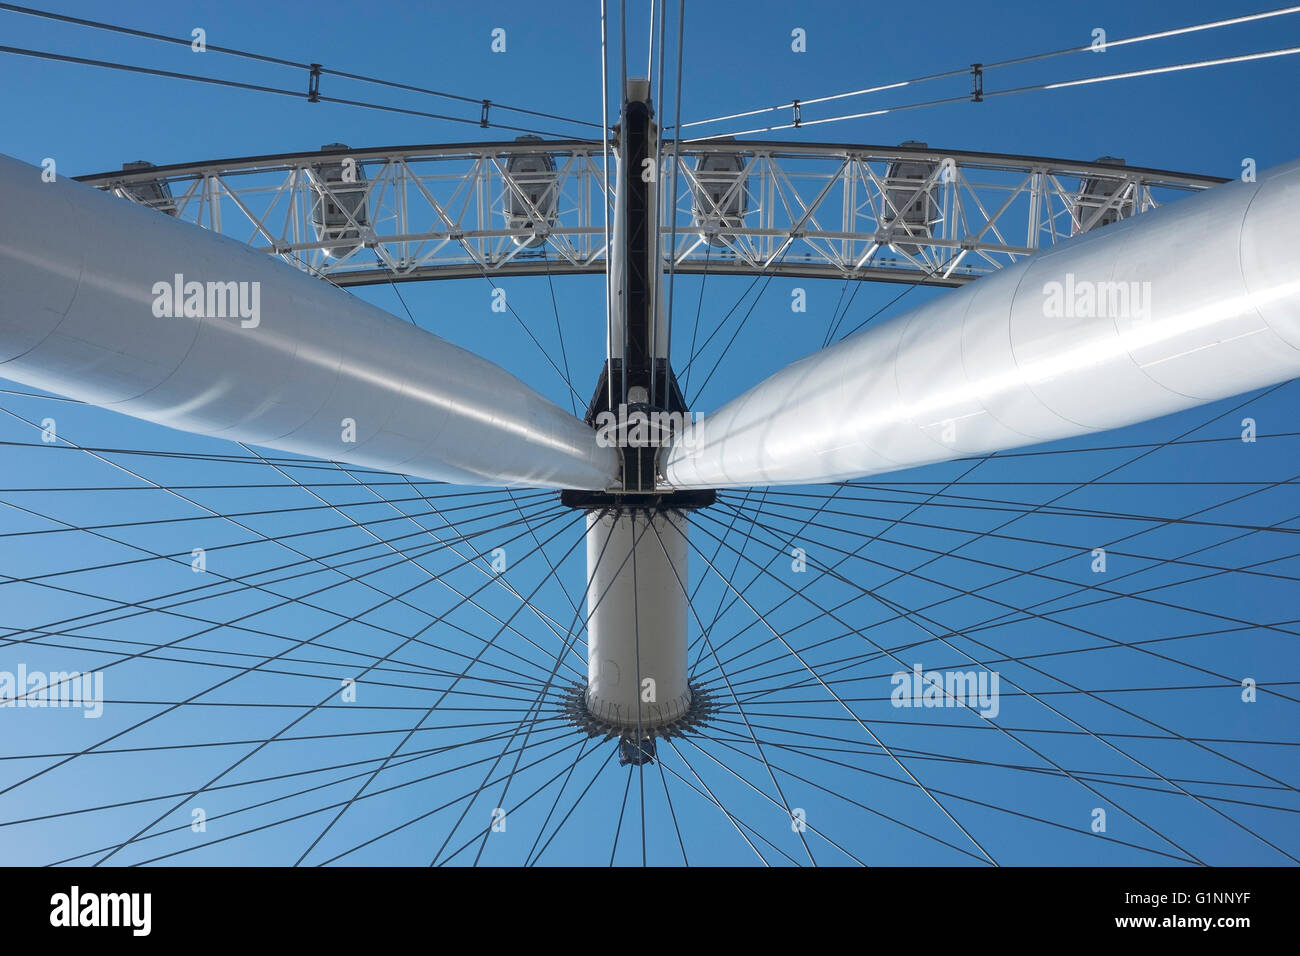 Close up detail of the London Eye, London UK - Stock Image